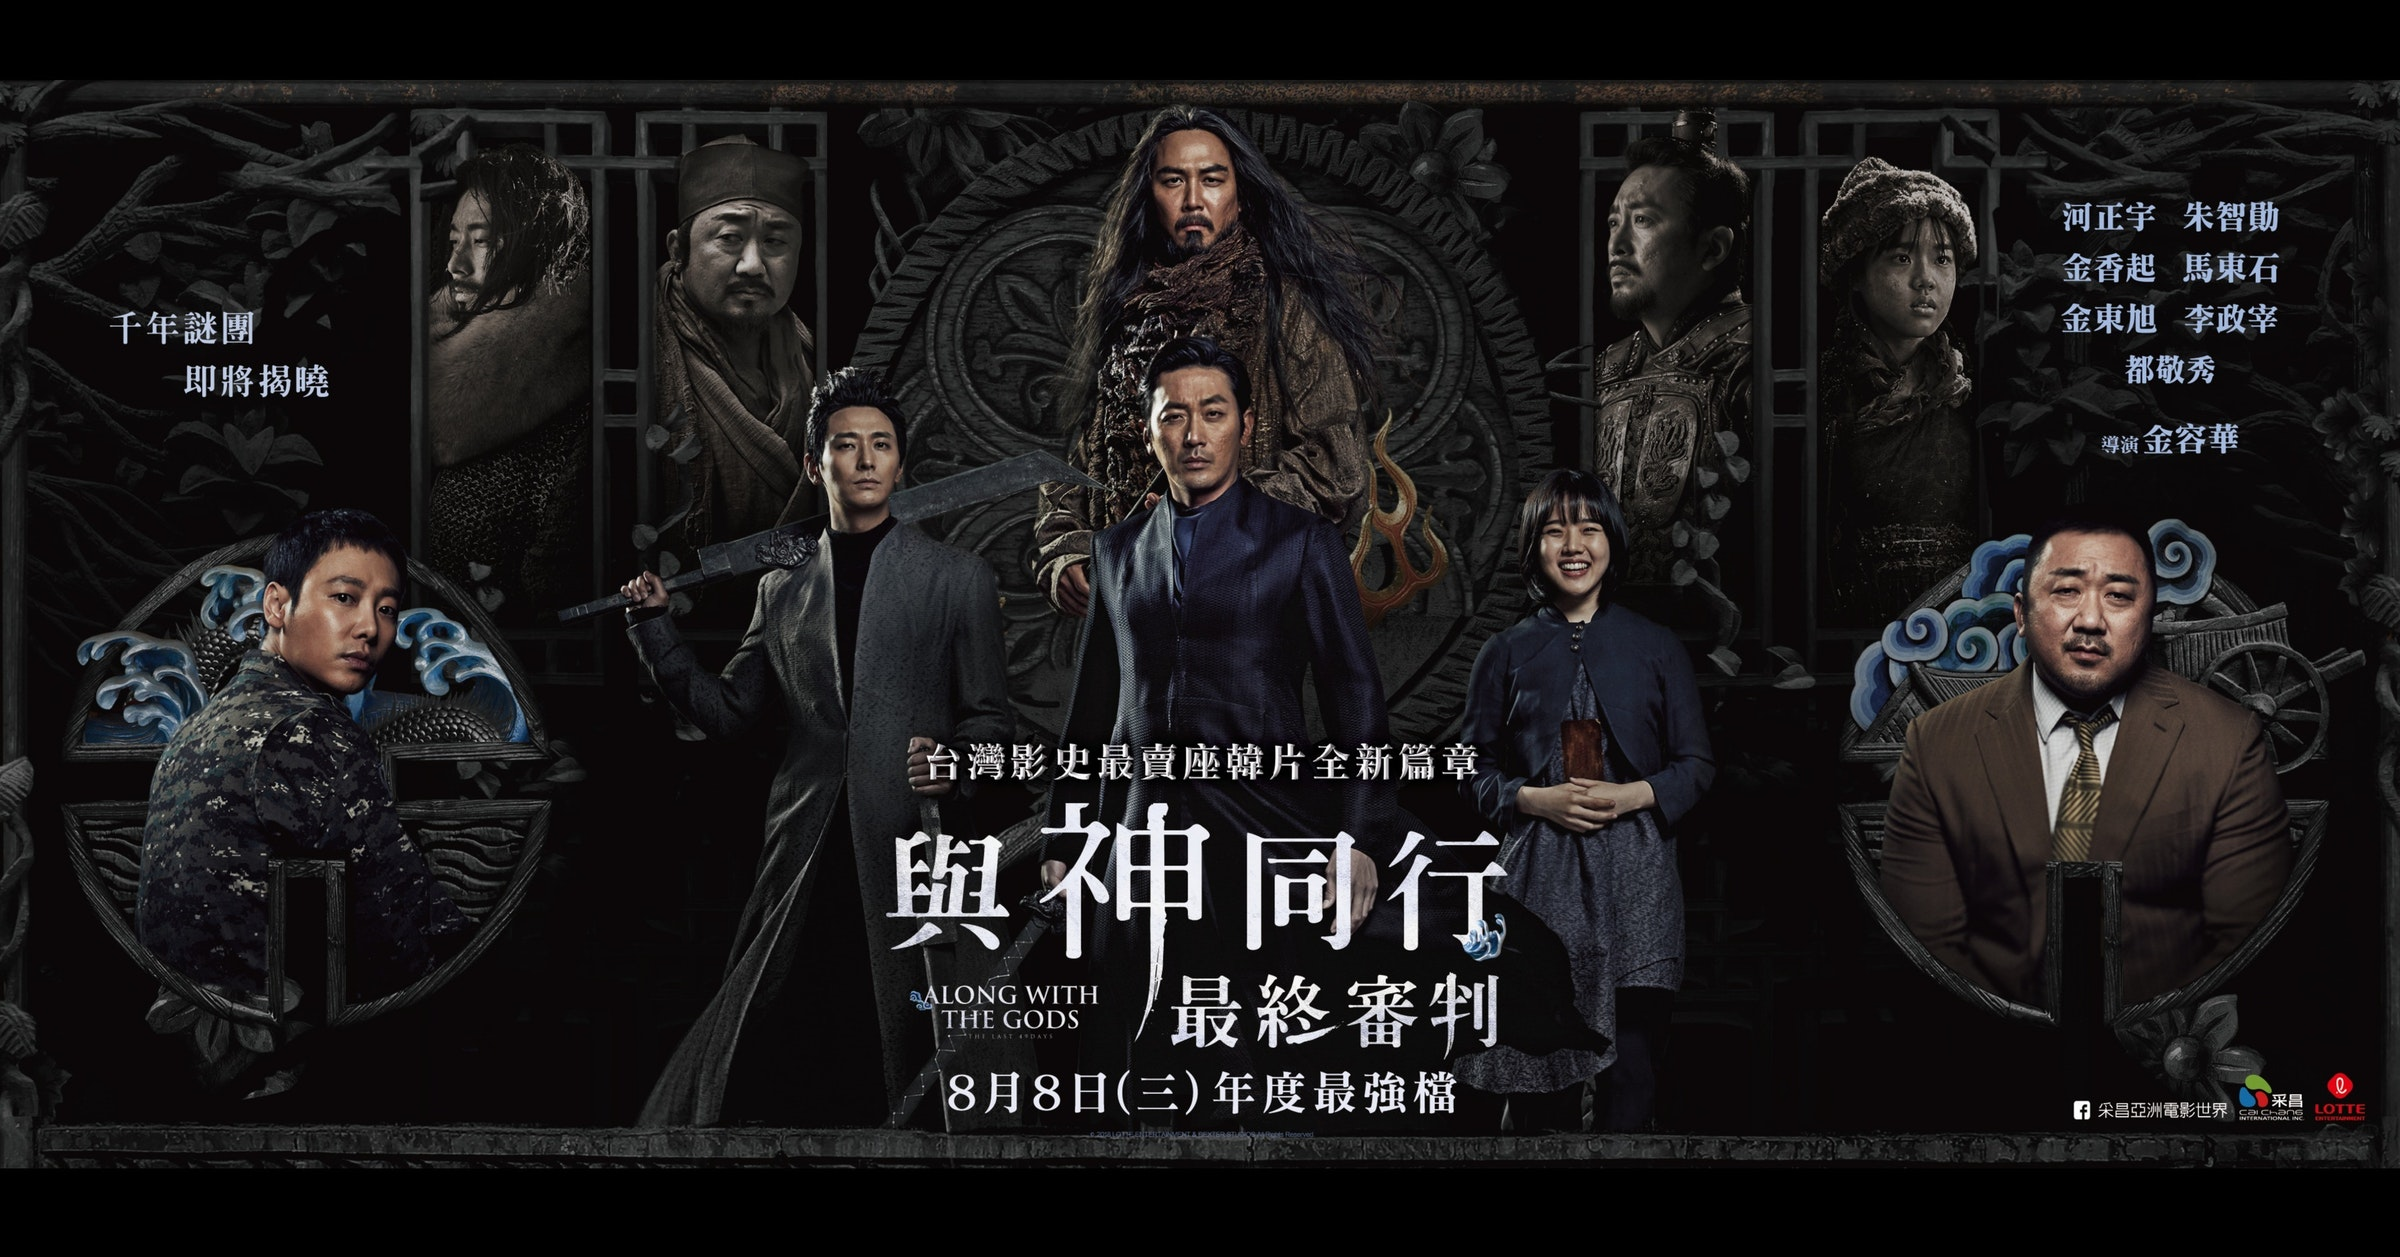 Along with the Gods: The Last 49 Days, Along with the Gods: The Two Worlds, 銅盤嚴選韓式烤肉-新竹巨城店, , 威秀影城, Cinema, cinema, 涓豆腐, Cinemark, Film, marley and me book, darkness, film, action film, computer wallpaper